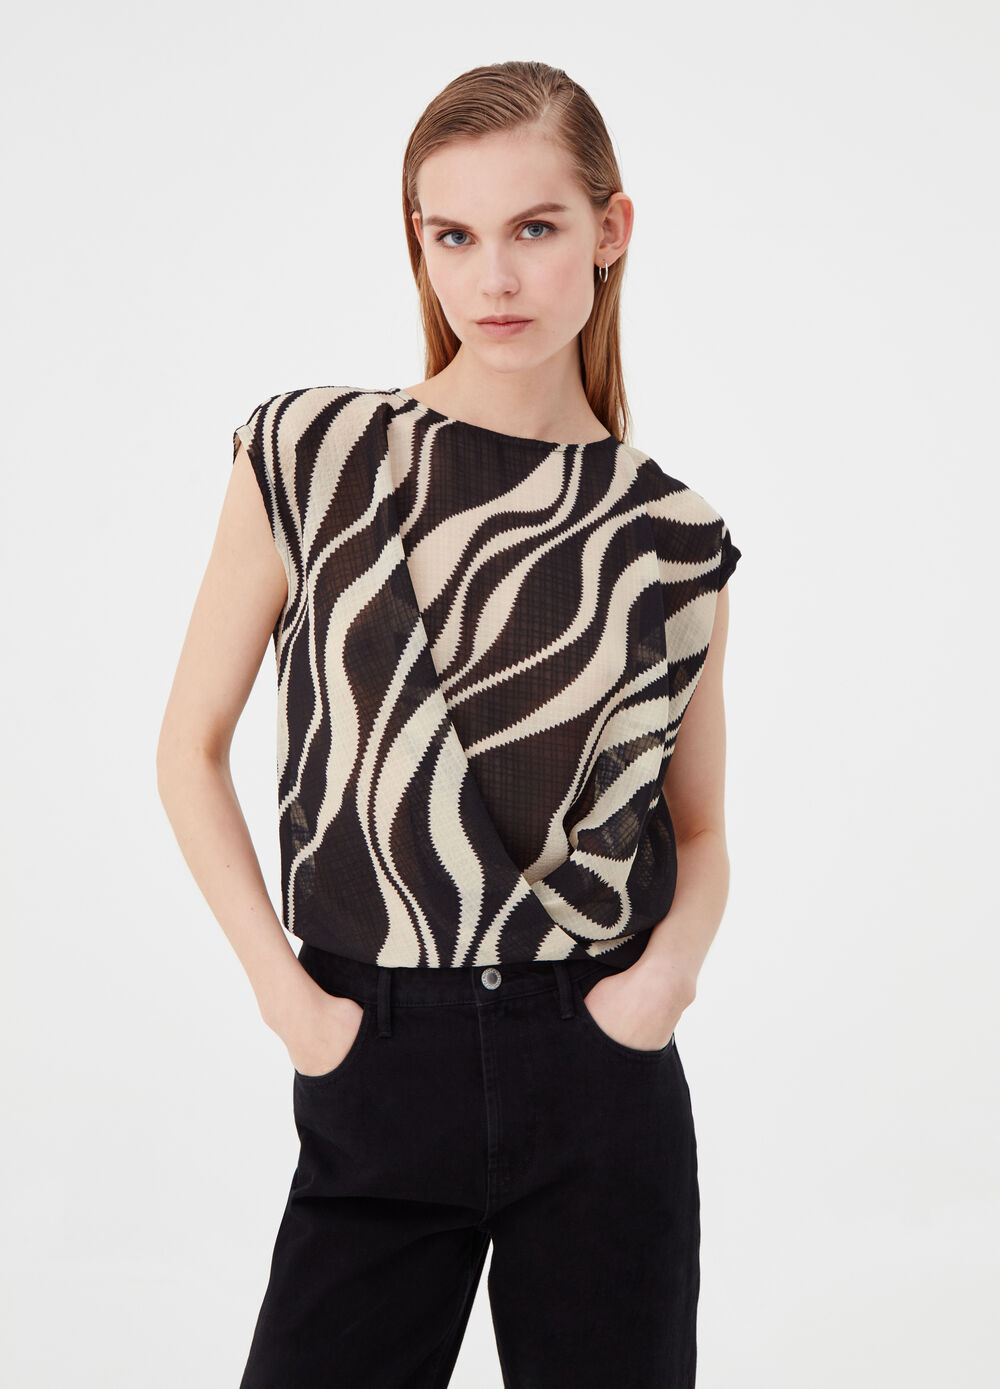 Crossover blouse with animal pattern